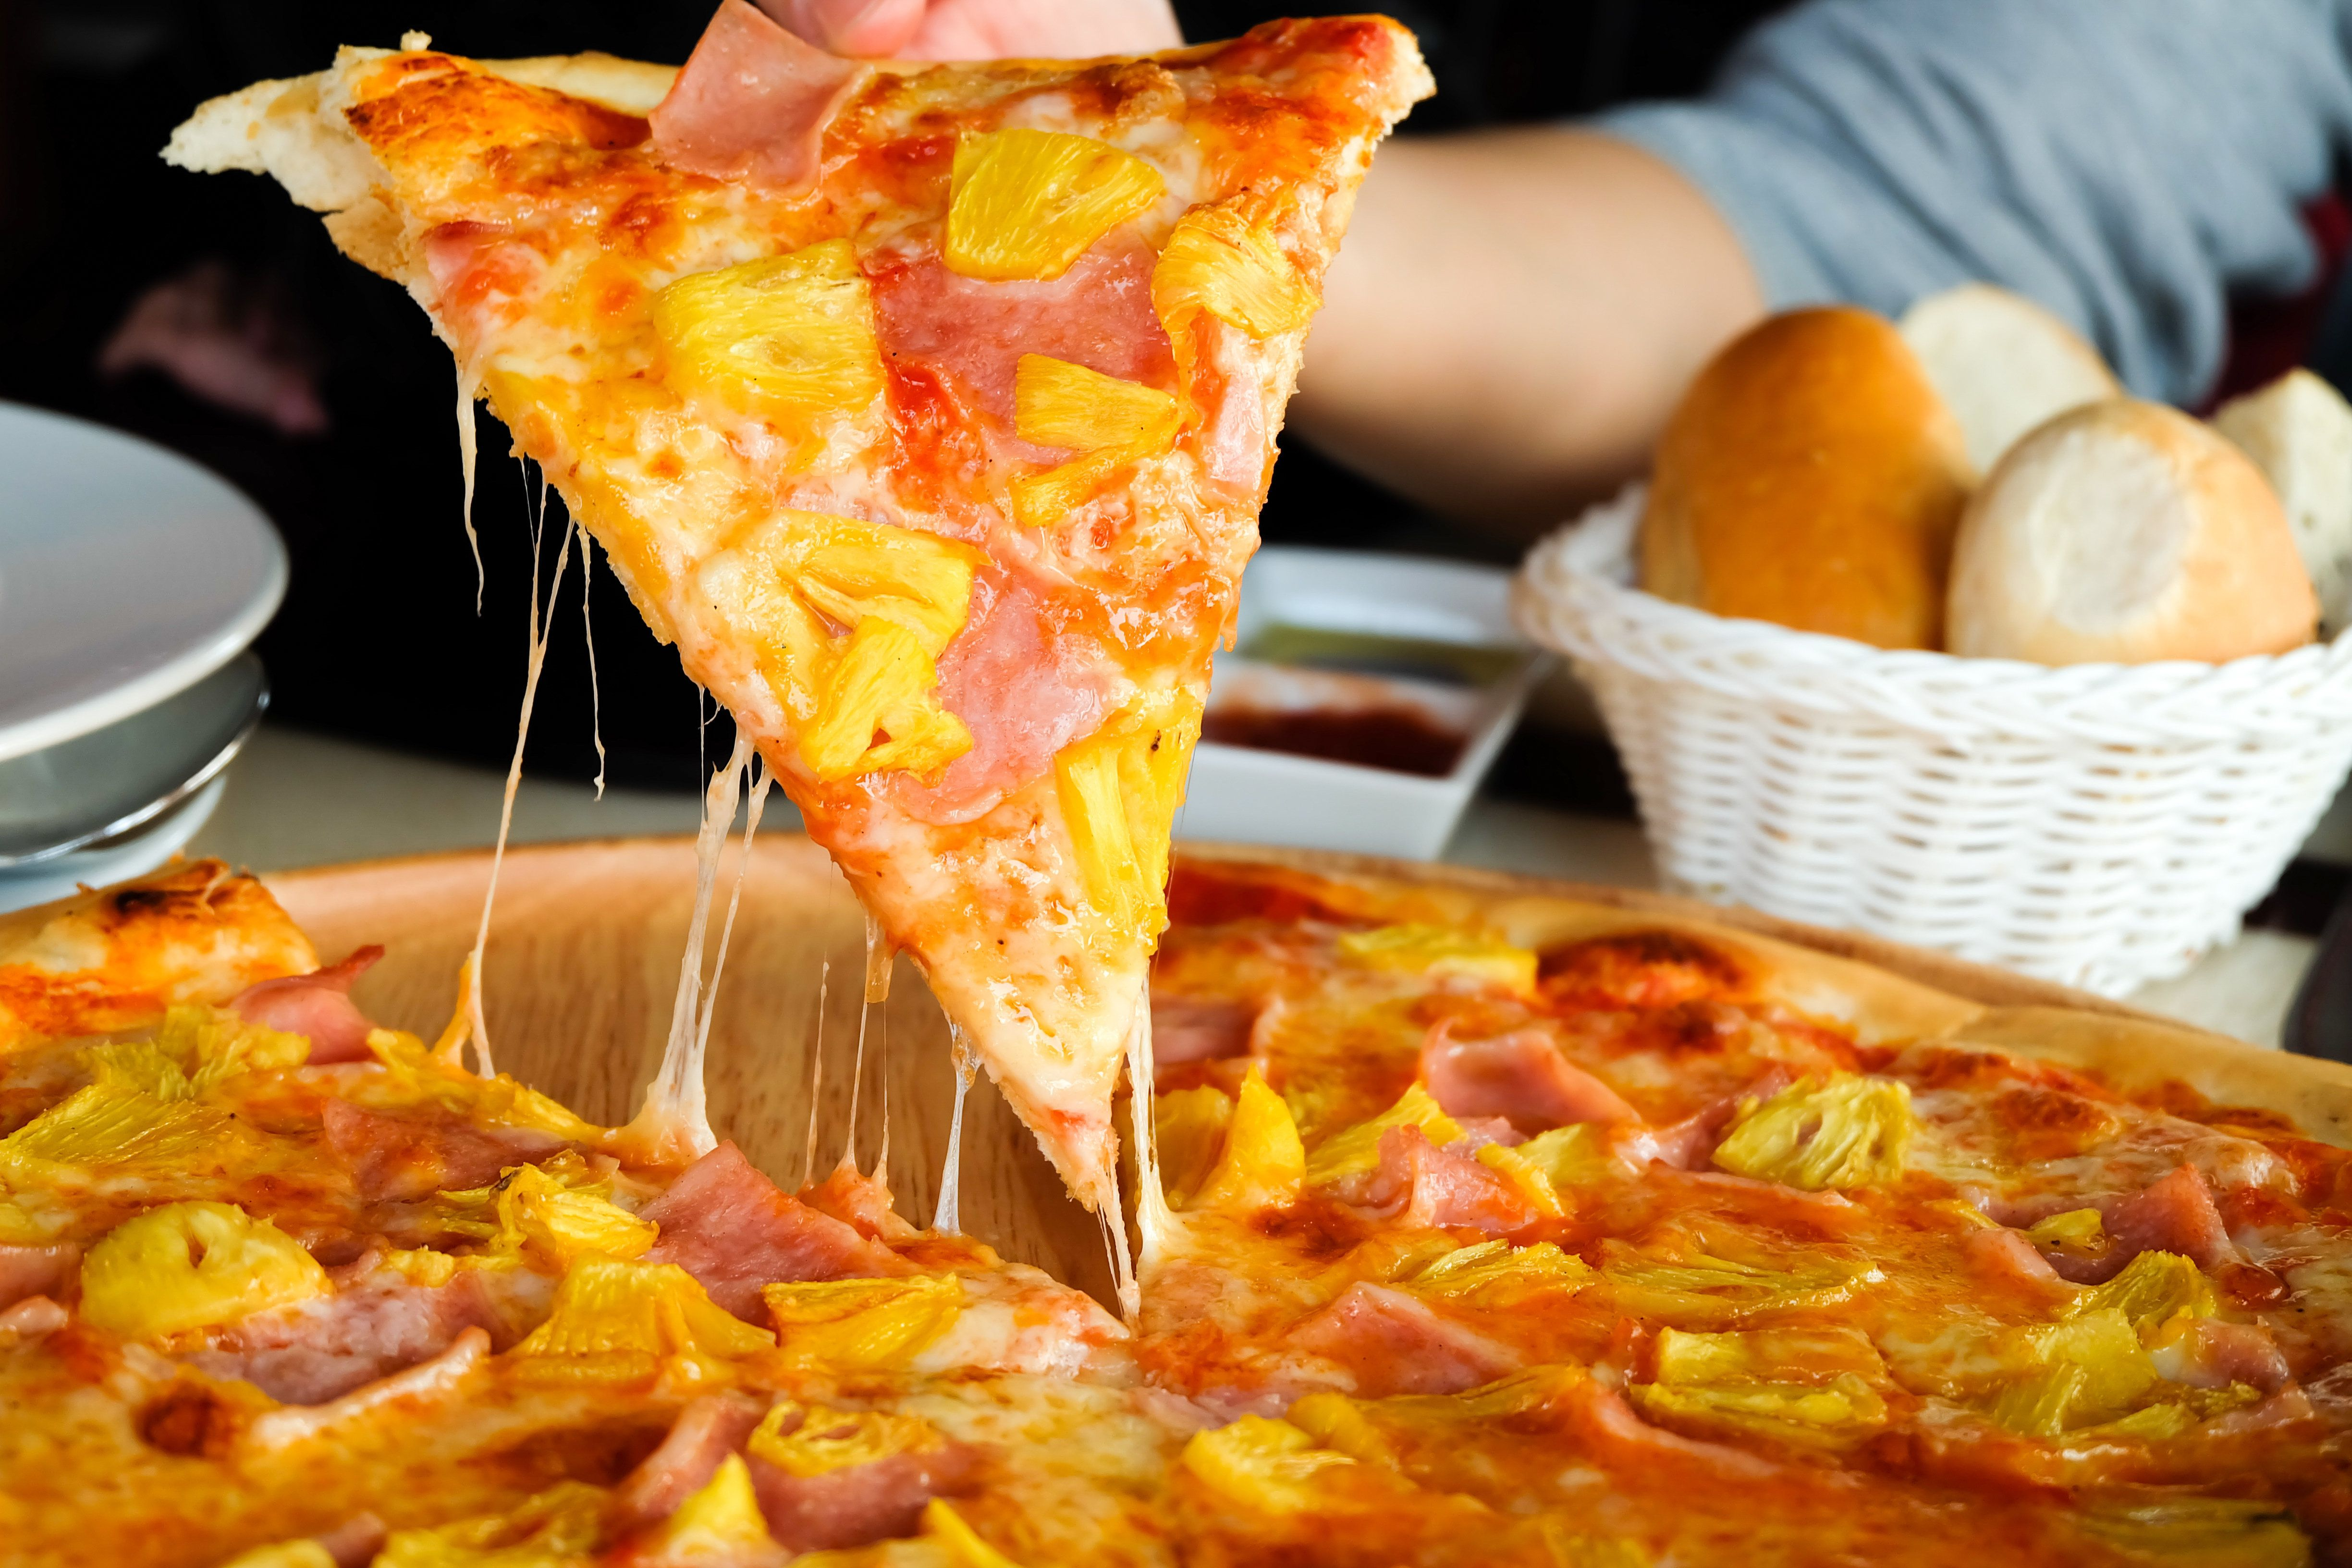 Close up Woman's hand picked Hawaiian pizza from a wooden tray on the table.